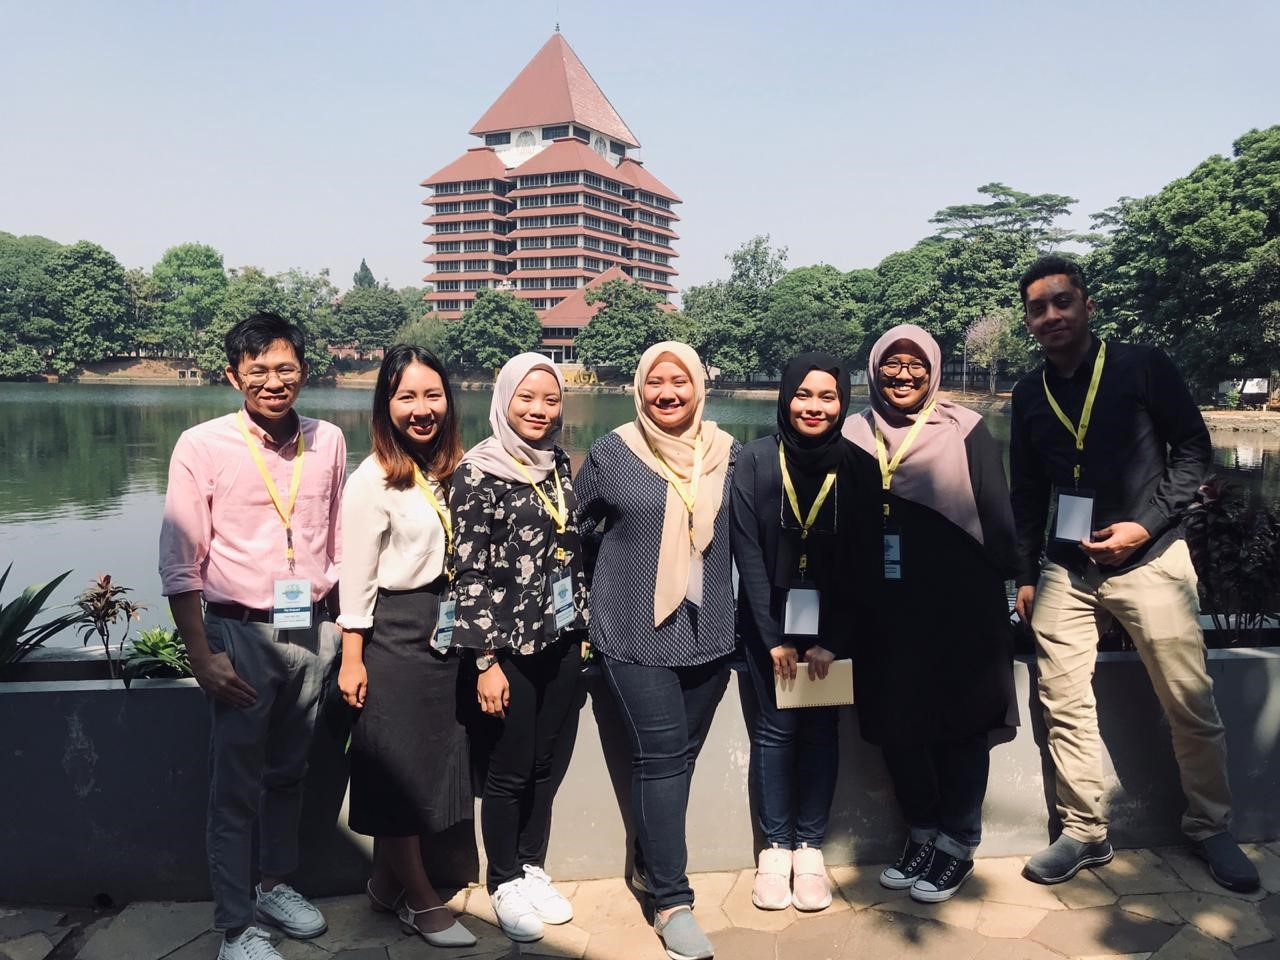 ASEA-UNINET Students Week on Sustainable Development 2019 - Participants on the campus of the University of Indonesia, Depok